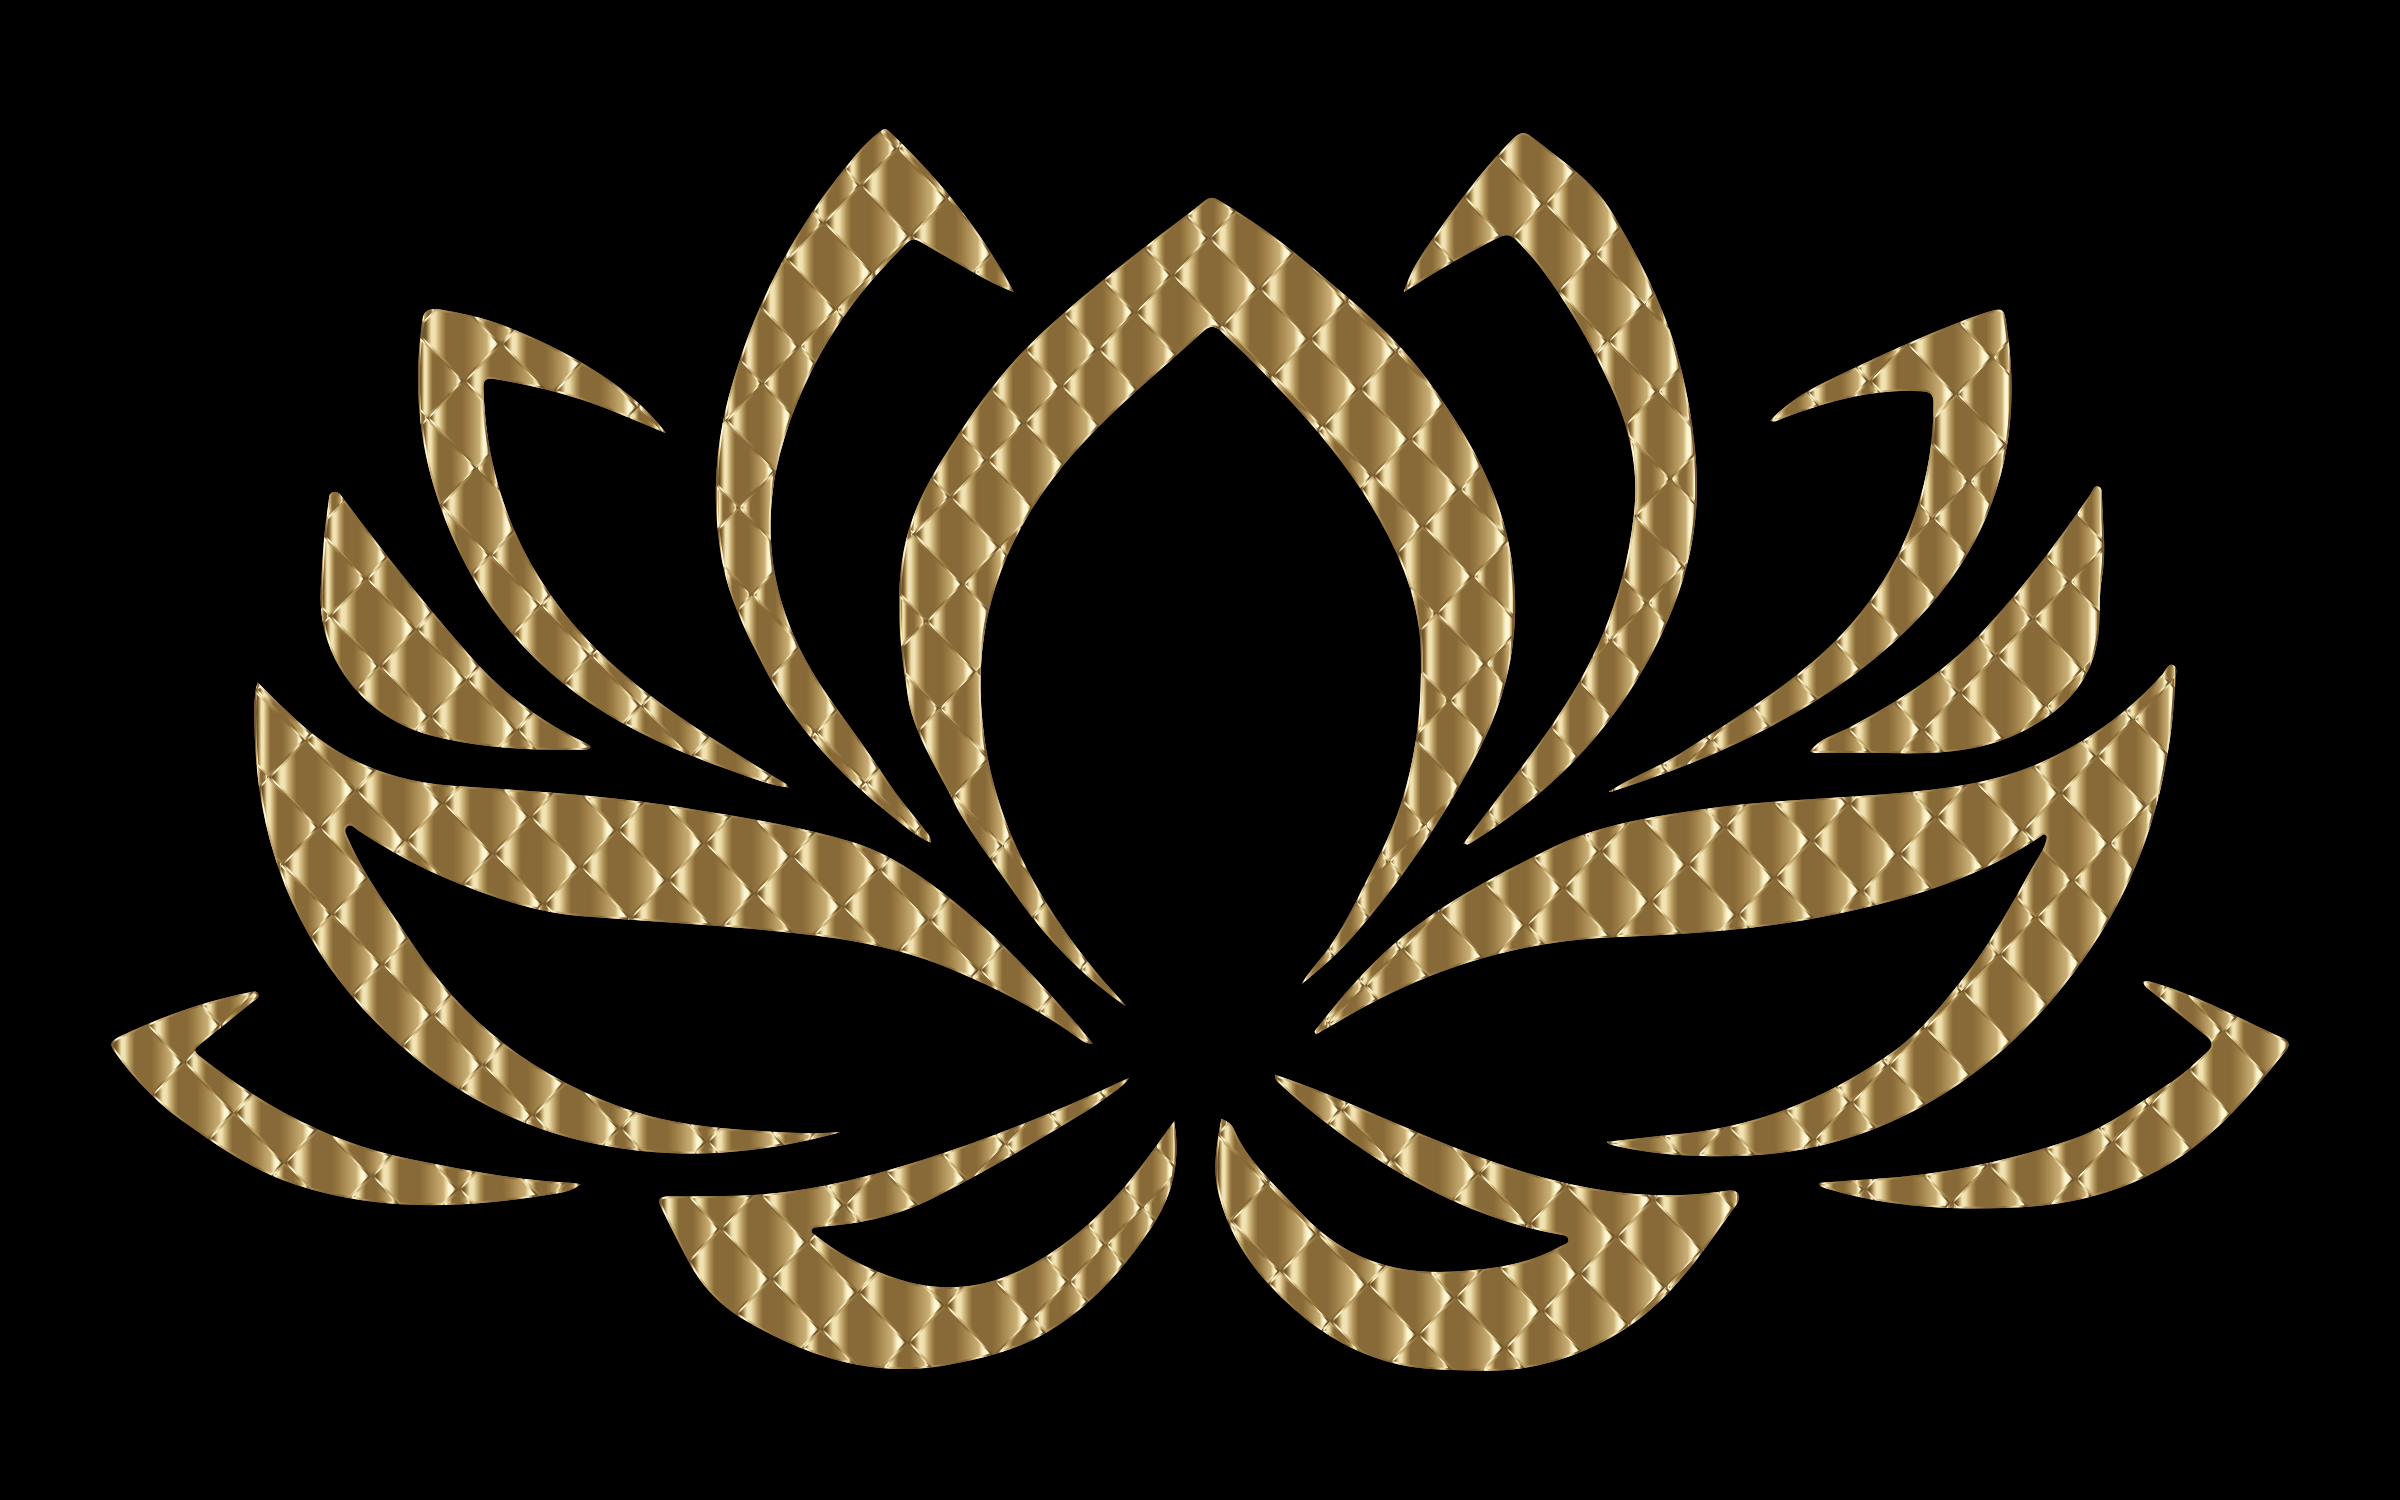 Golden Lotus Flower 4 Variation 2 by GDJ